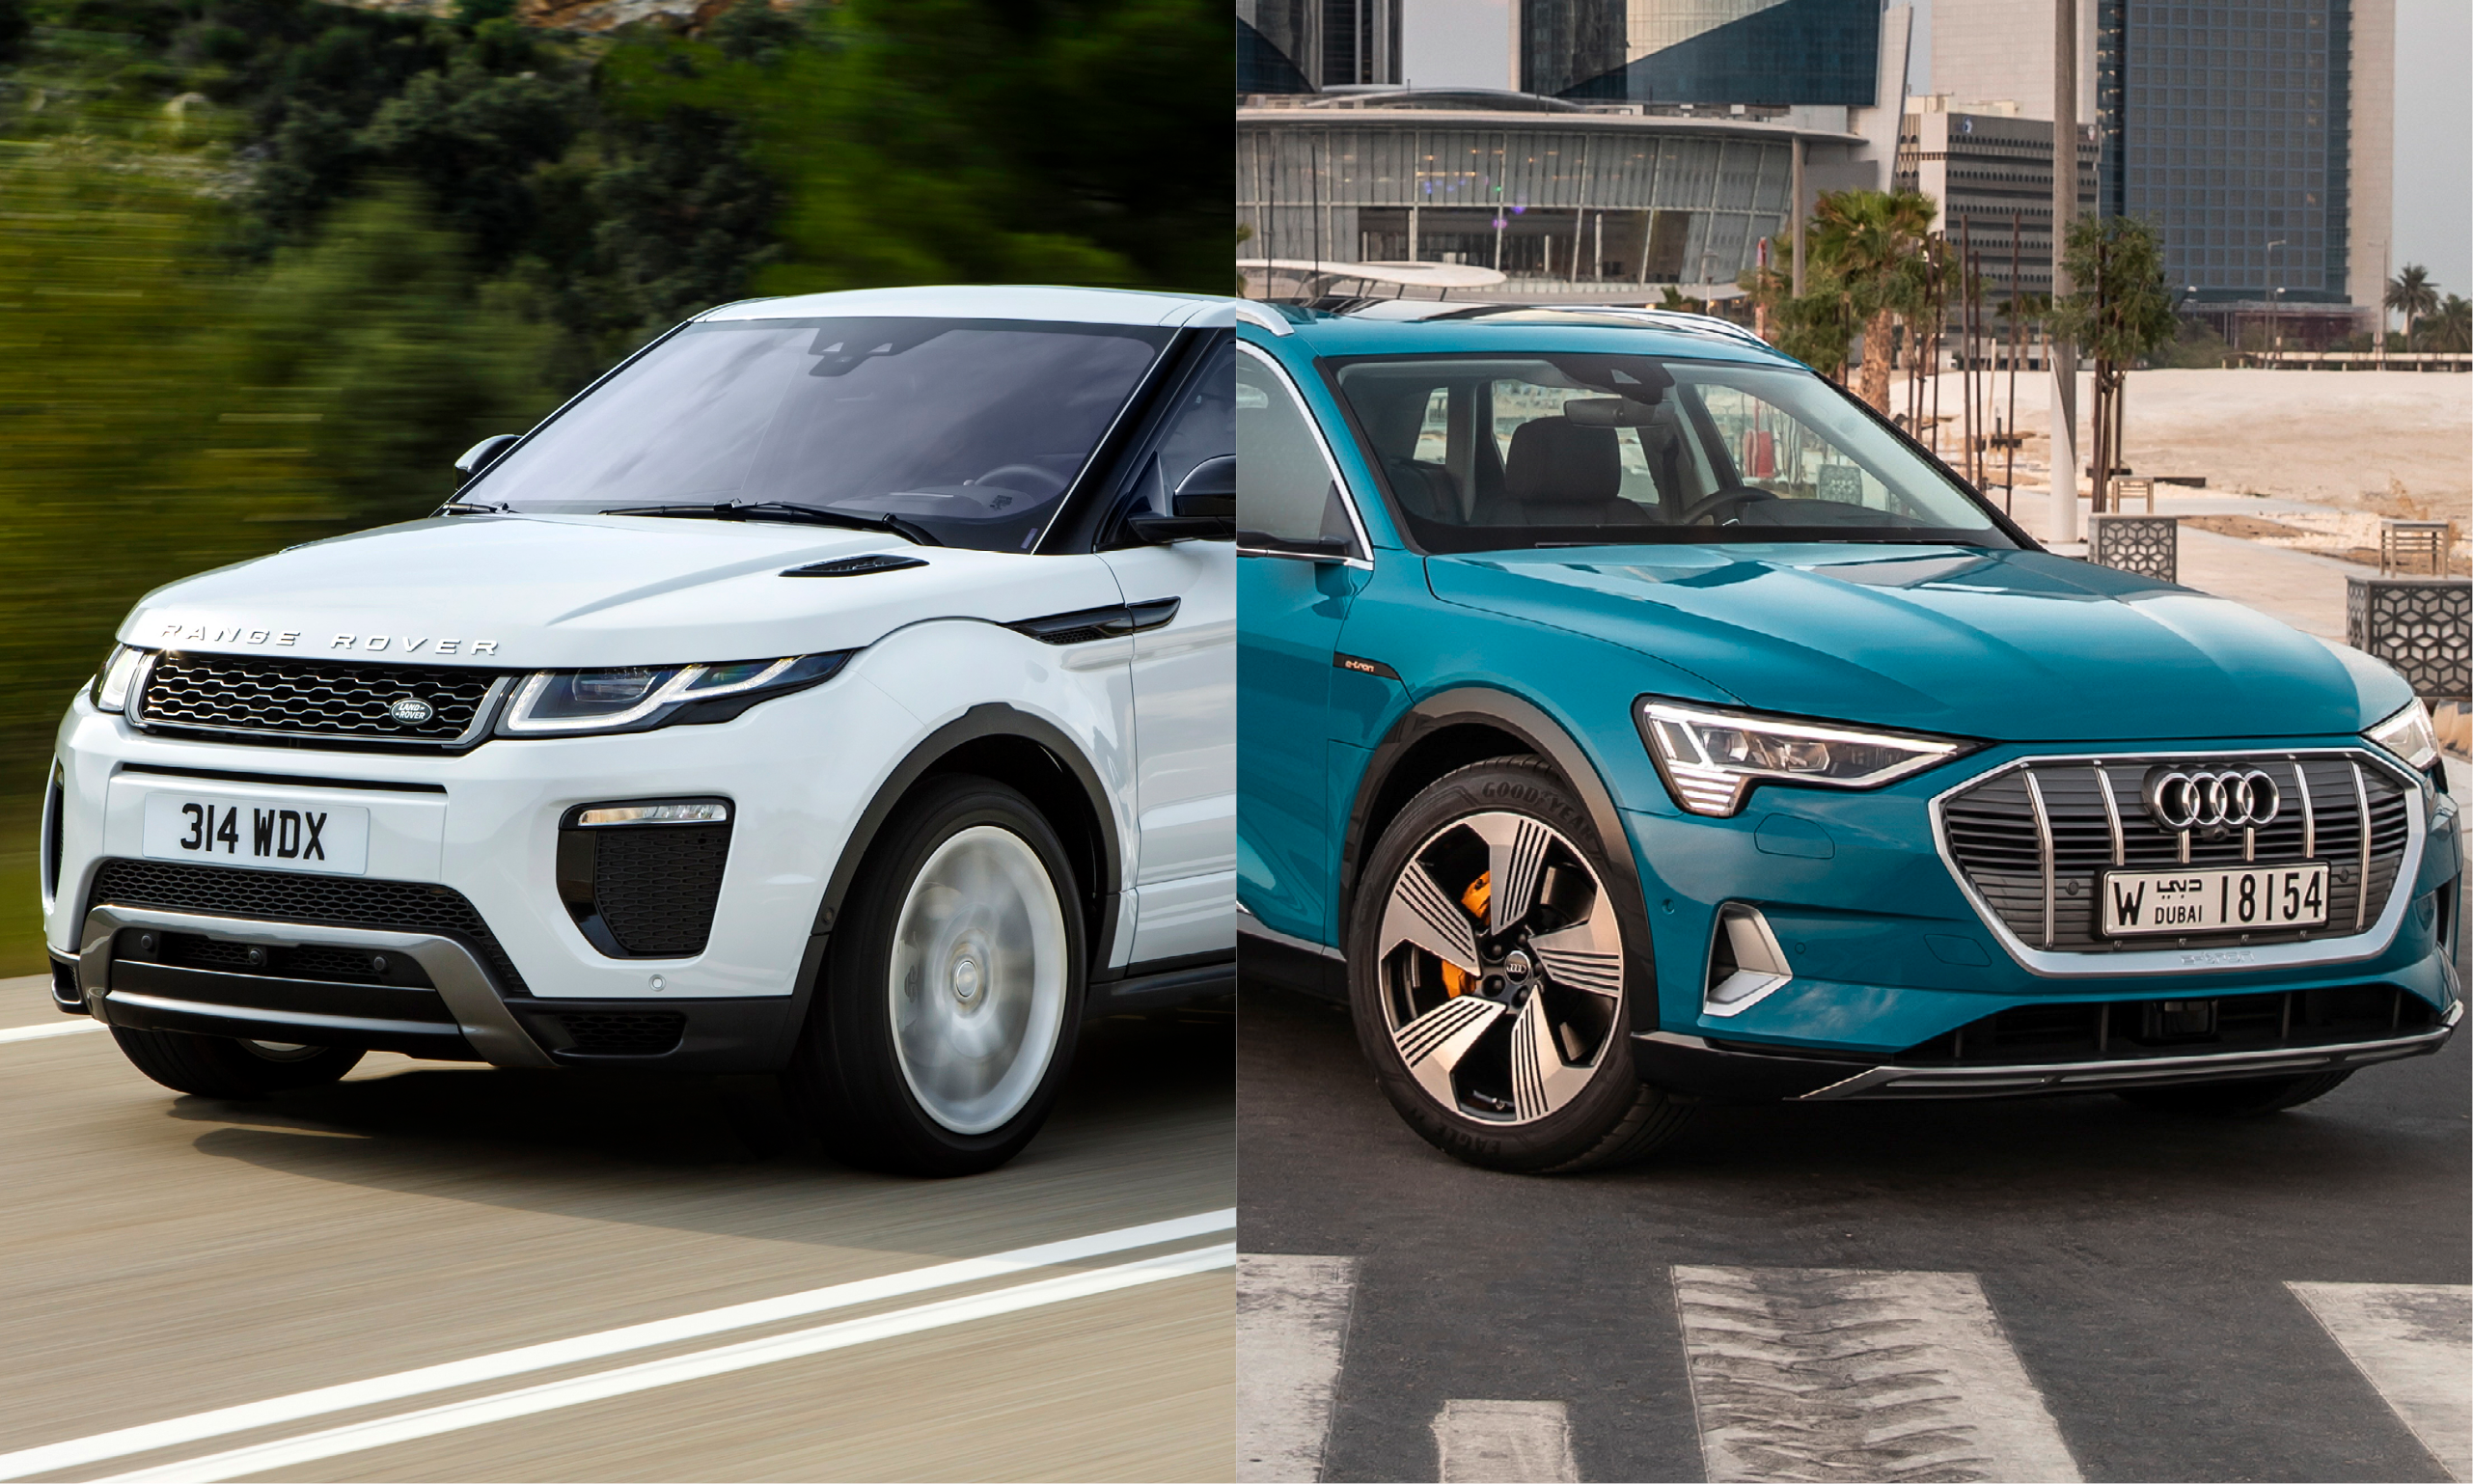 2019 models of the Land Rover Evoque and Audi e-tron